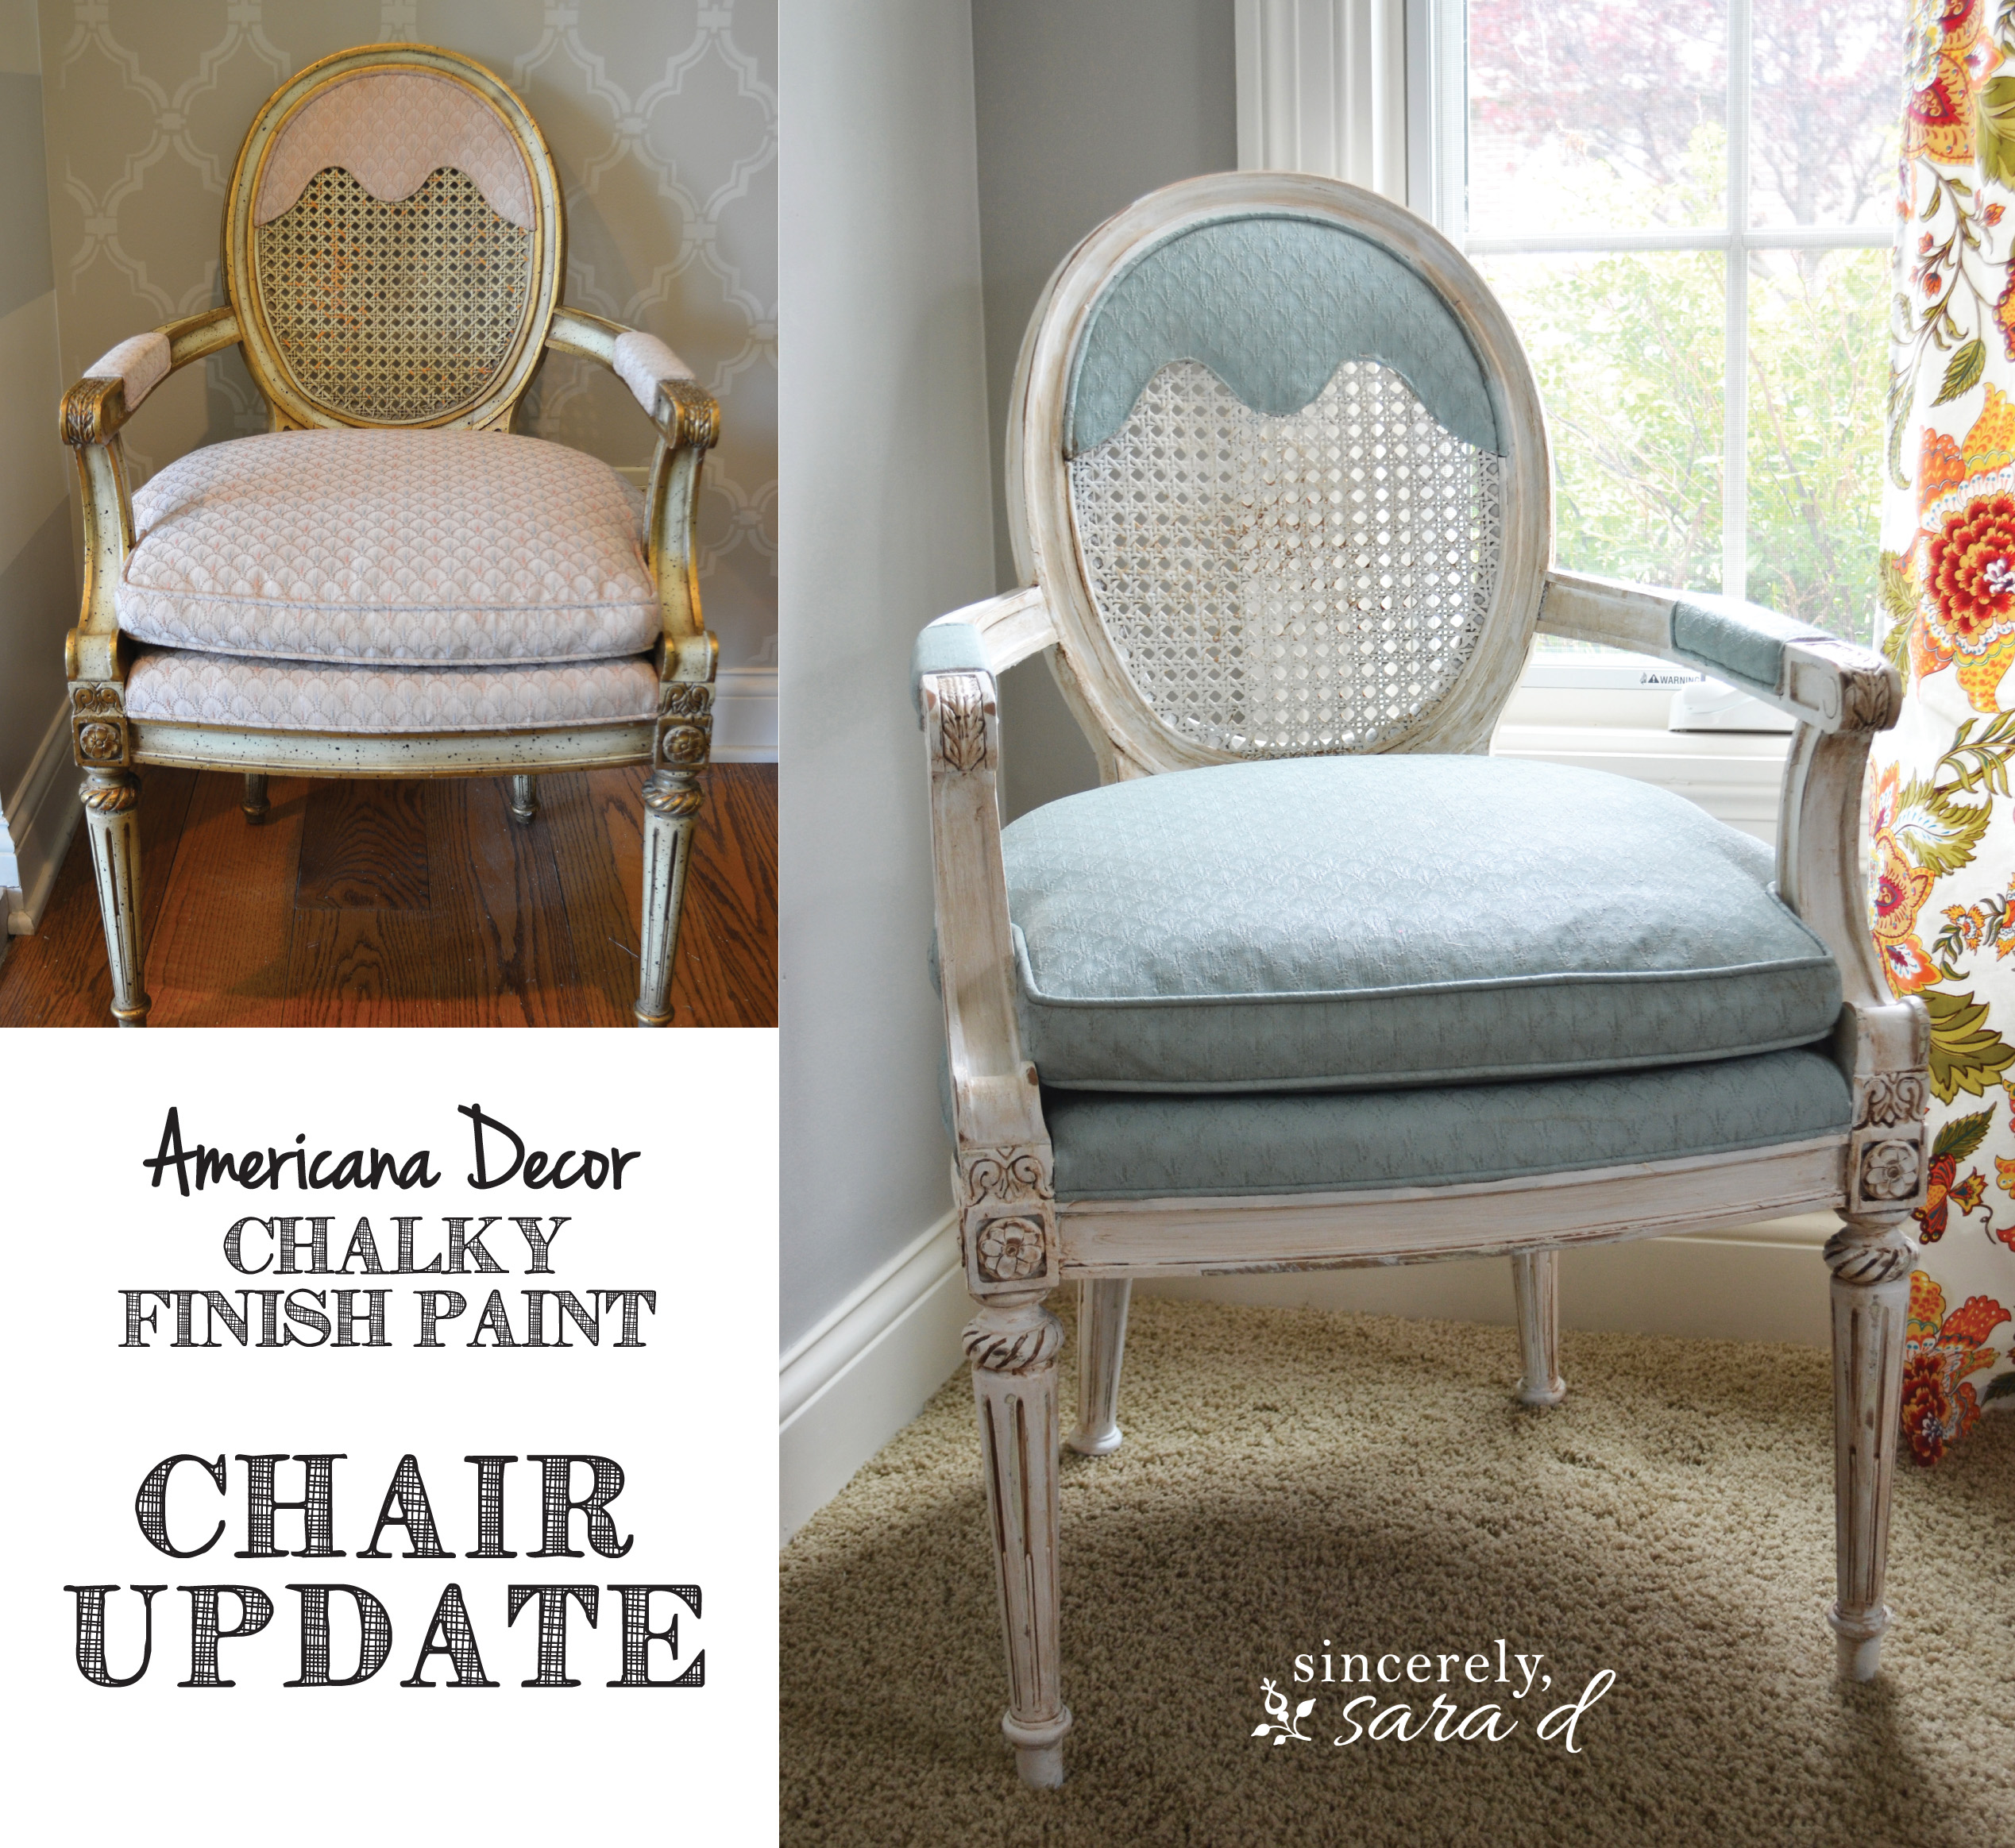 Americana Decor Chalky Finish Painted Upholstered Chair Using Chalk Paint Sincerely Sara D